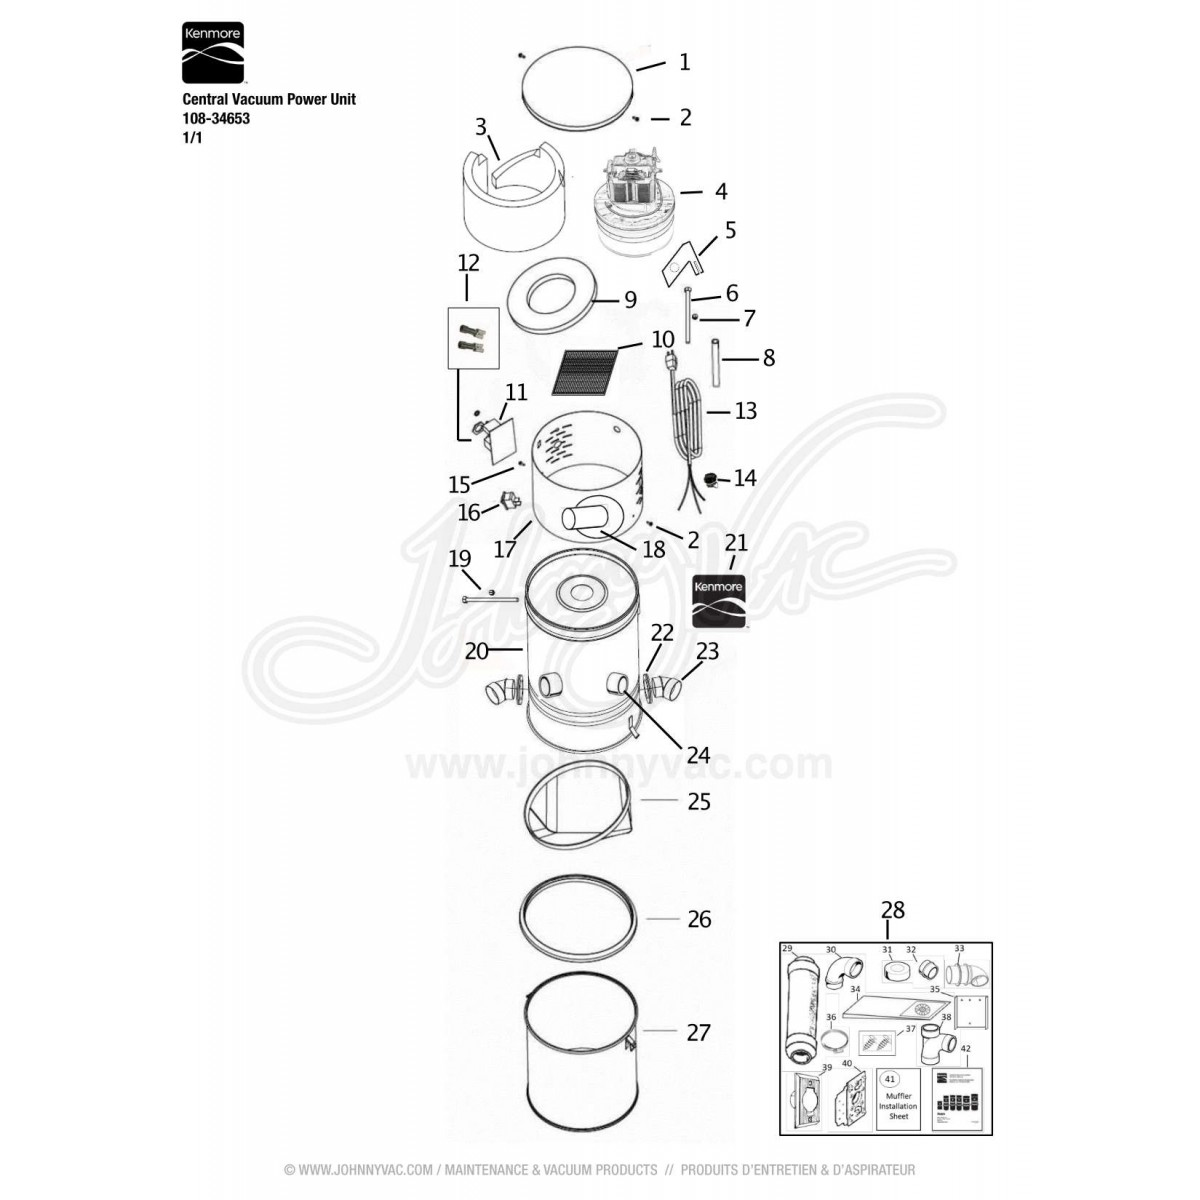 Kenmore Central Vacuum Power Unit 108 34653 Sears Cleaner Wiring Diagram